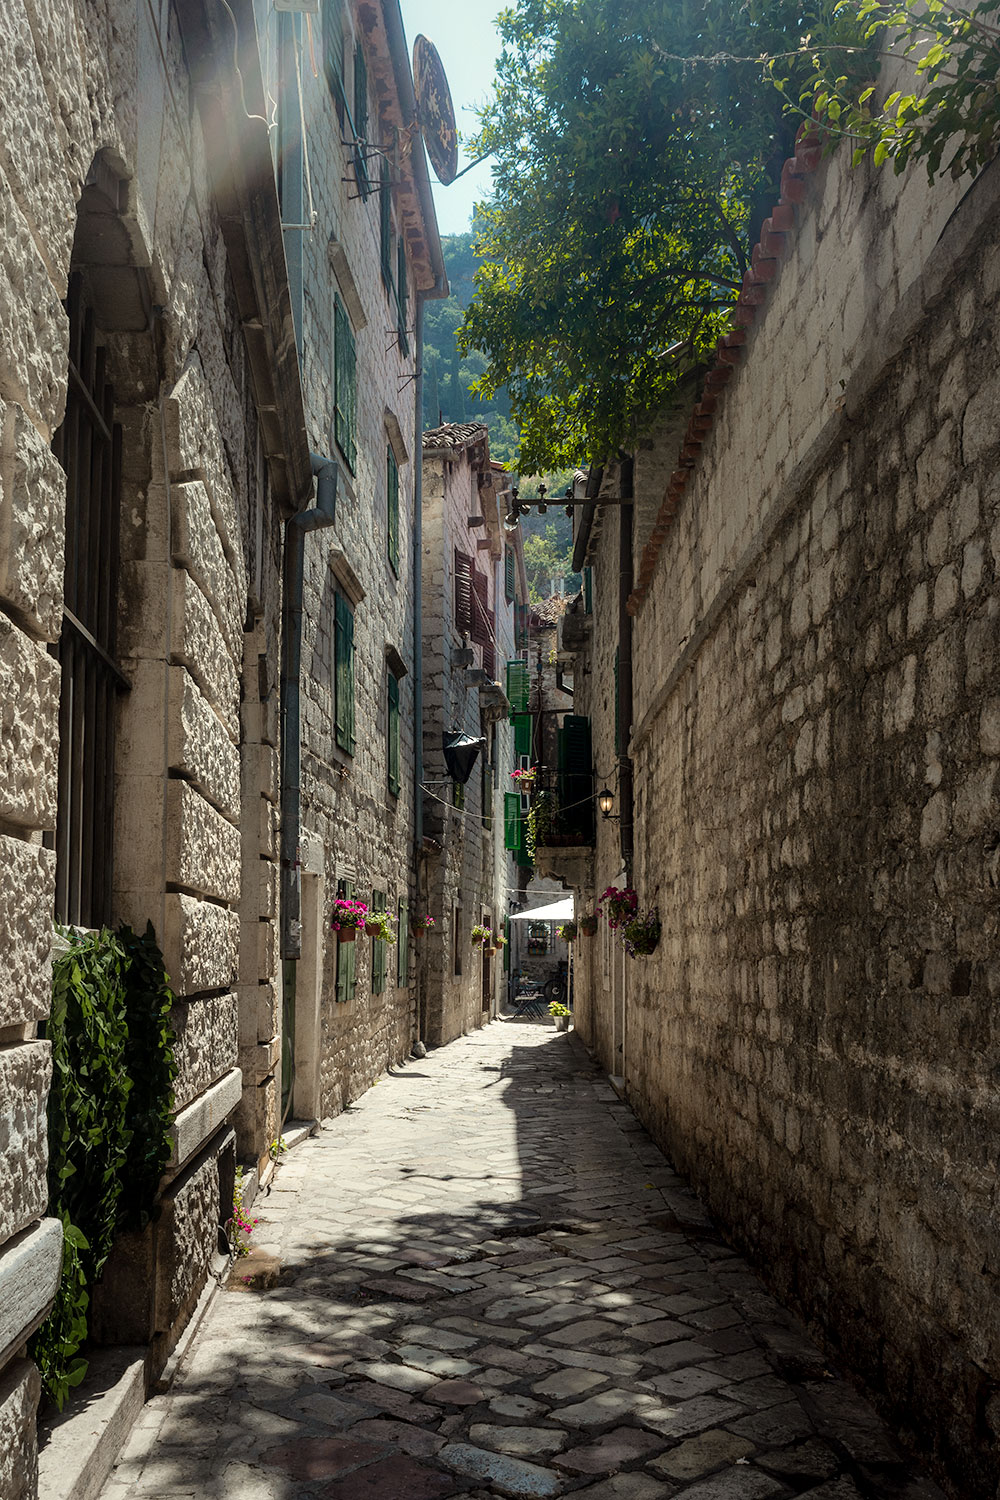 The streets of Kotor's Old Town seem to take you back in time